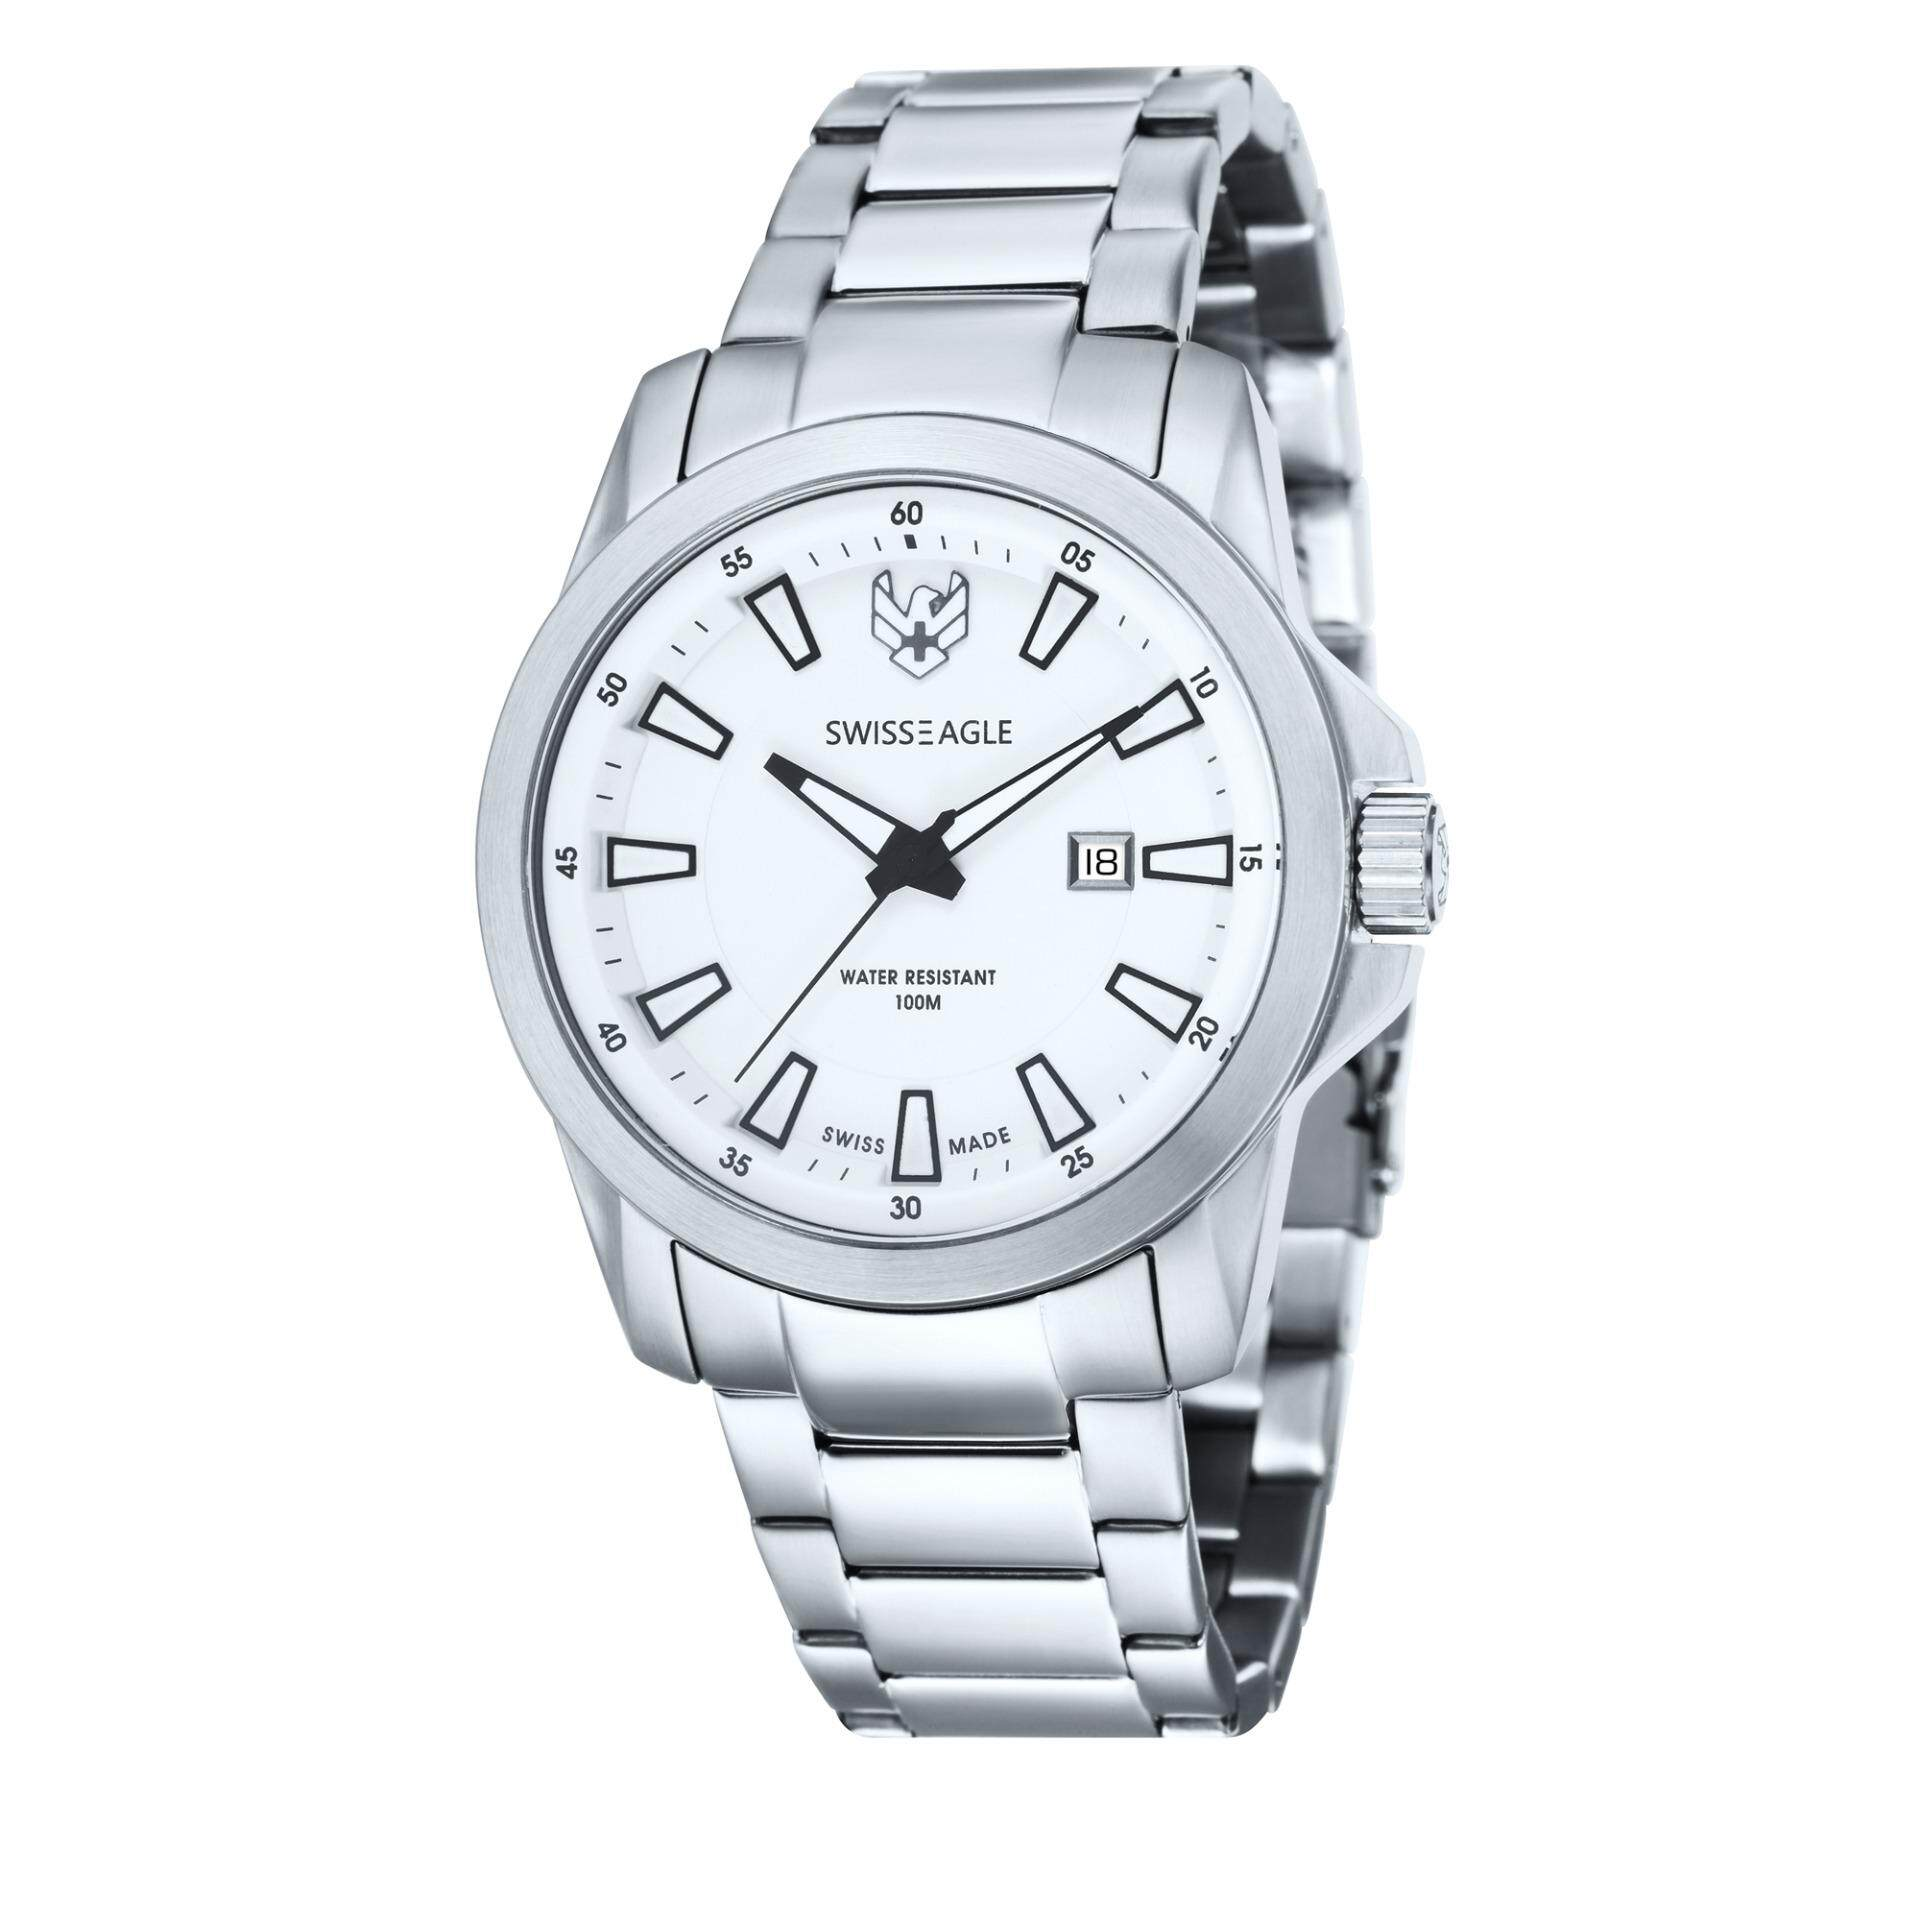 eagle grey dp india low analog se watches in online watch amazon at swiss dial prices buy men